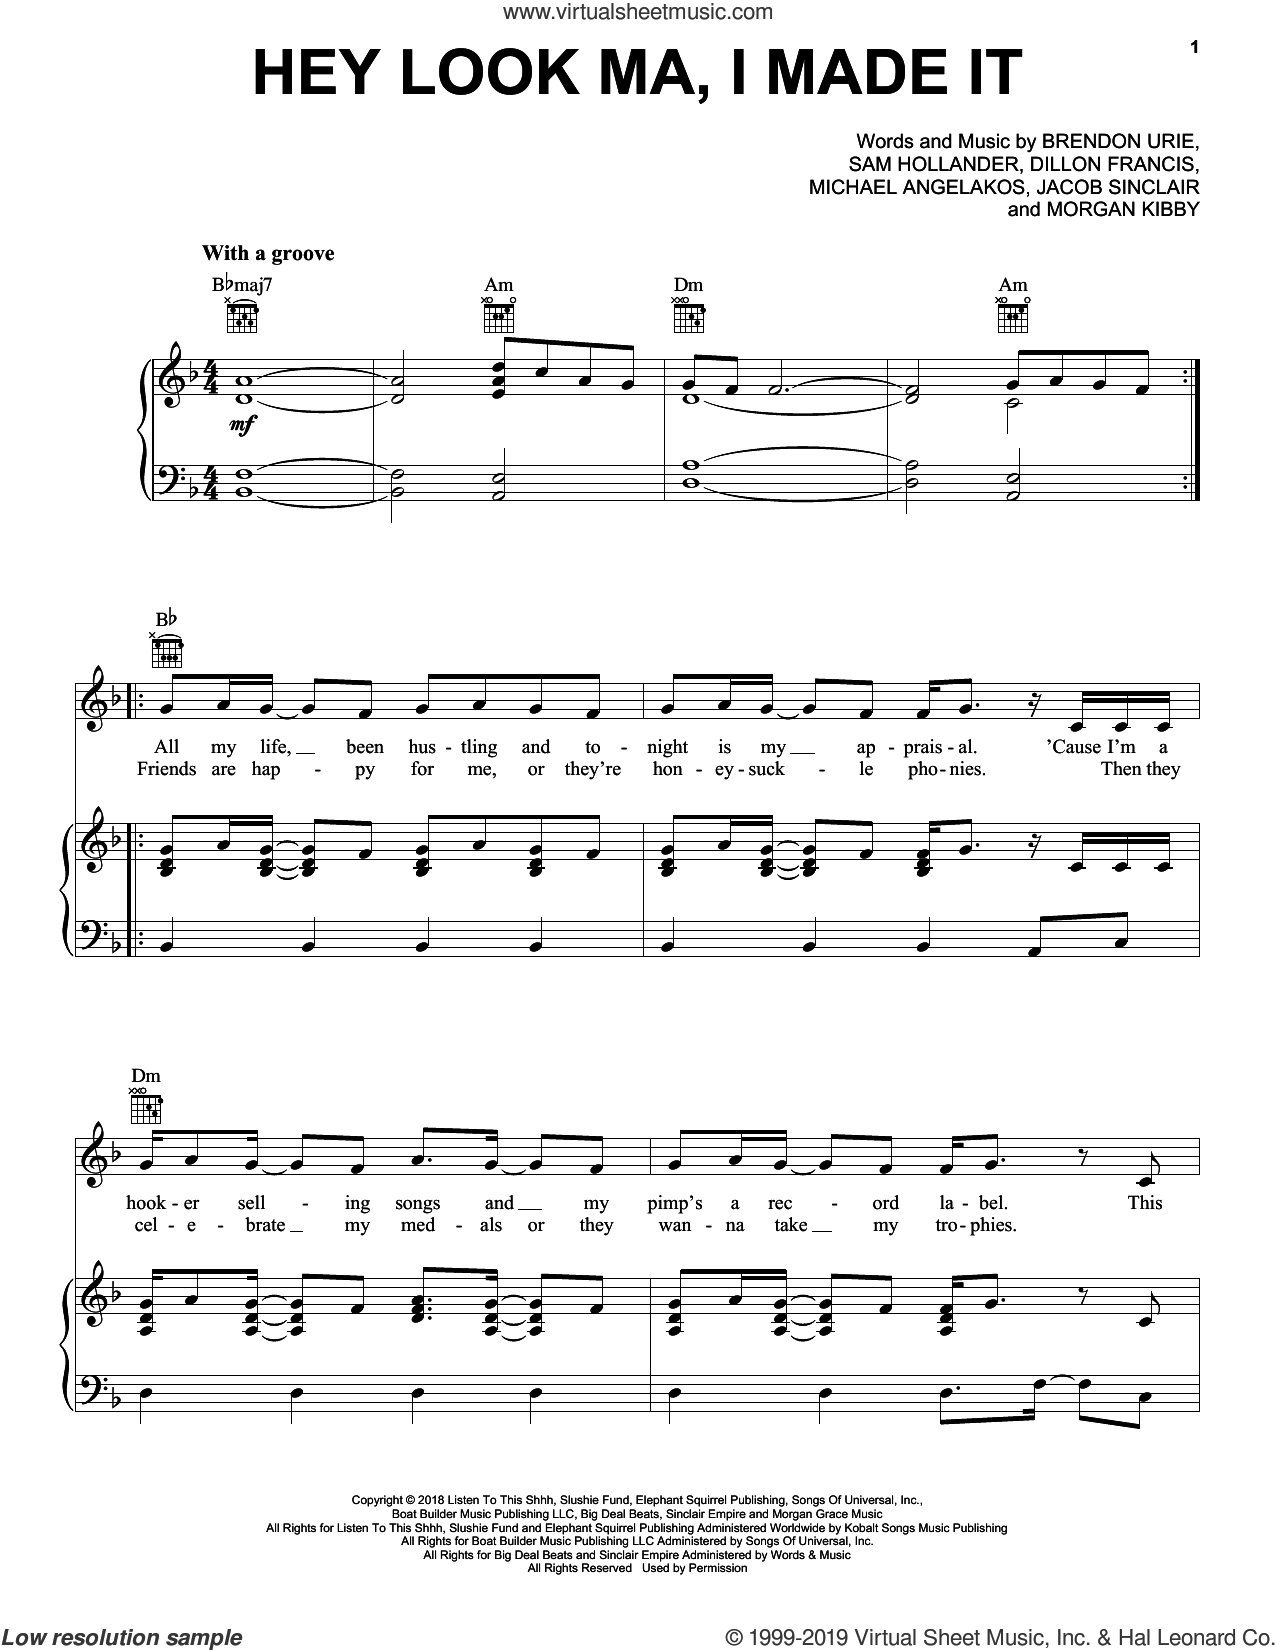 Hey Look Ma, I Made It sheet music for voice, piano or guitar by Panic! At The Disco, Brendon Urie, Dillon Francis, Jacob Sinclair, Michael Angelakos, Morgan Kibby and Sam Hollander, intermediate skill level